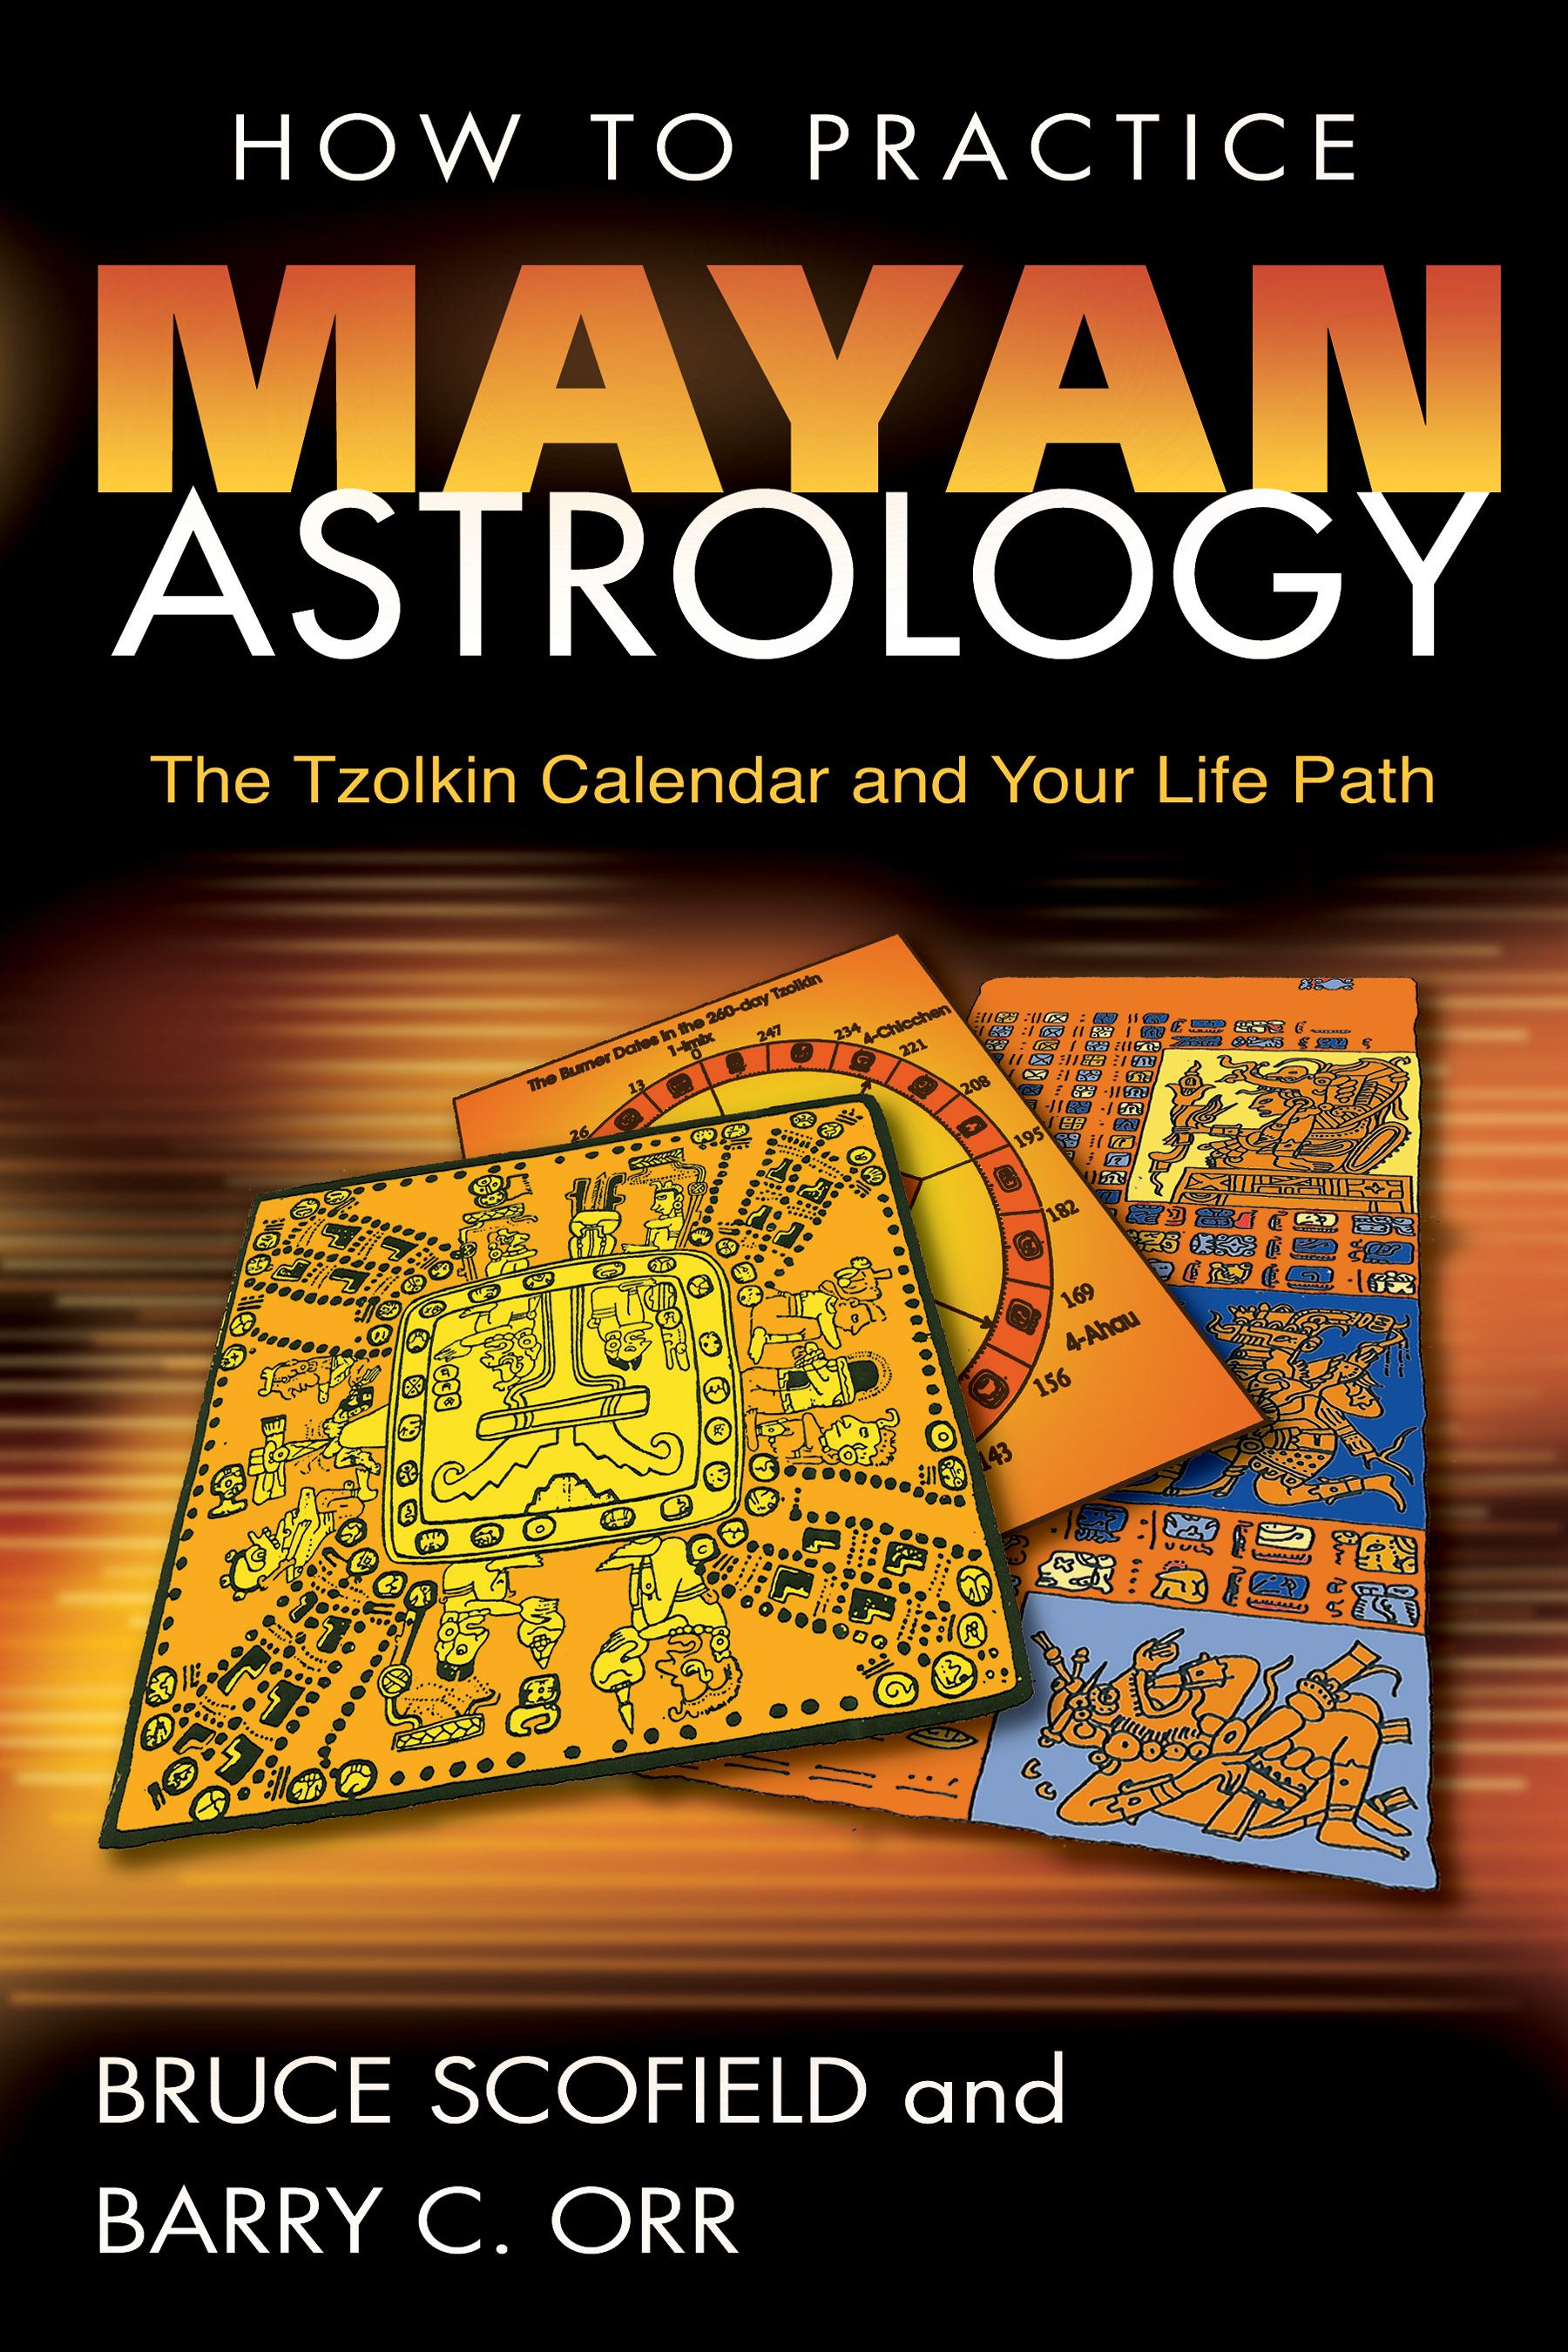 How to practice mayan astrology 9781591430643 hr